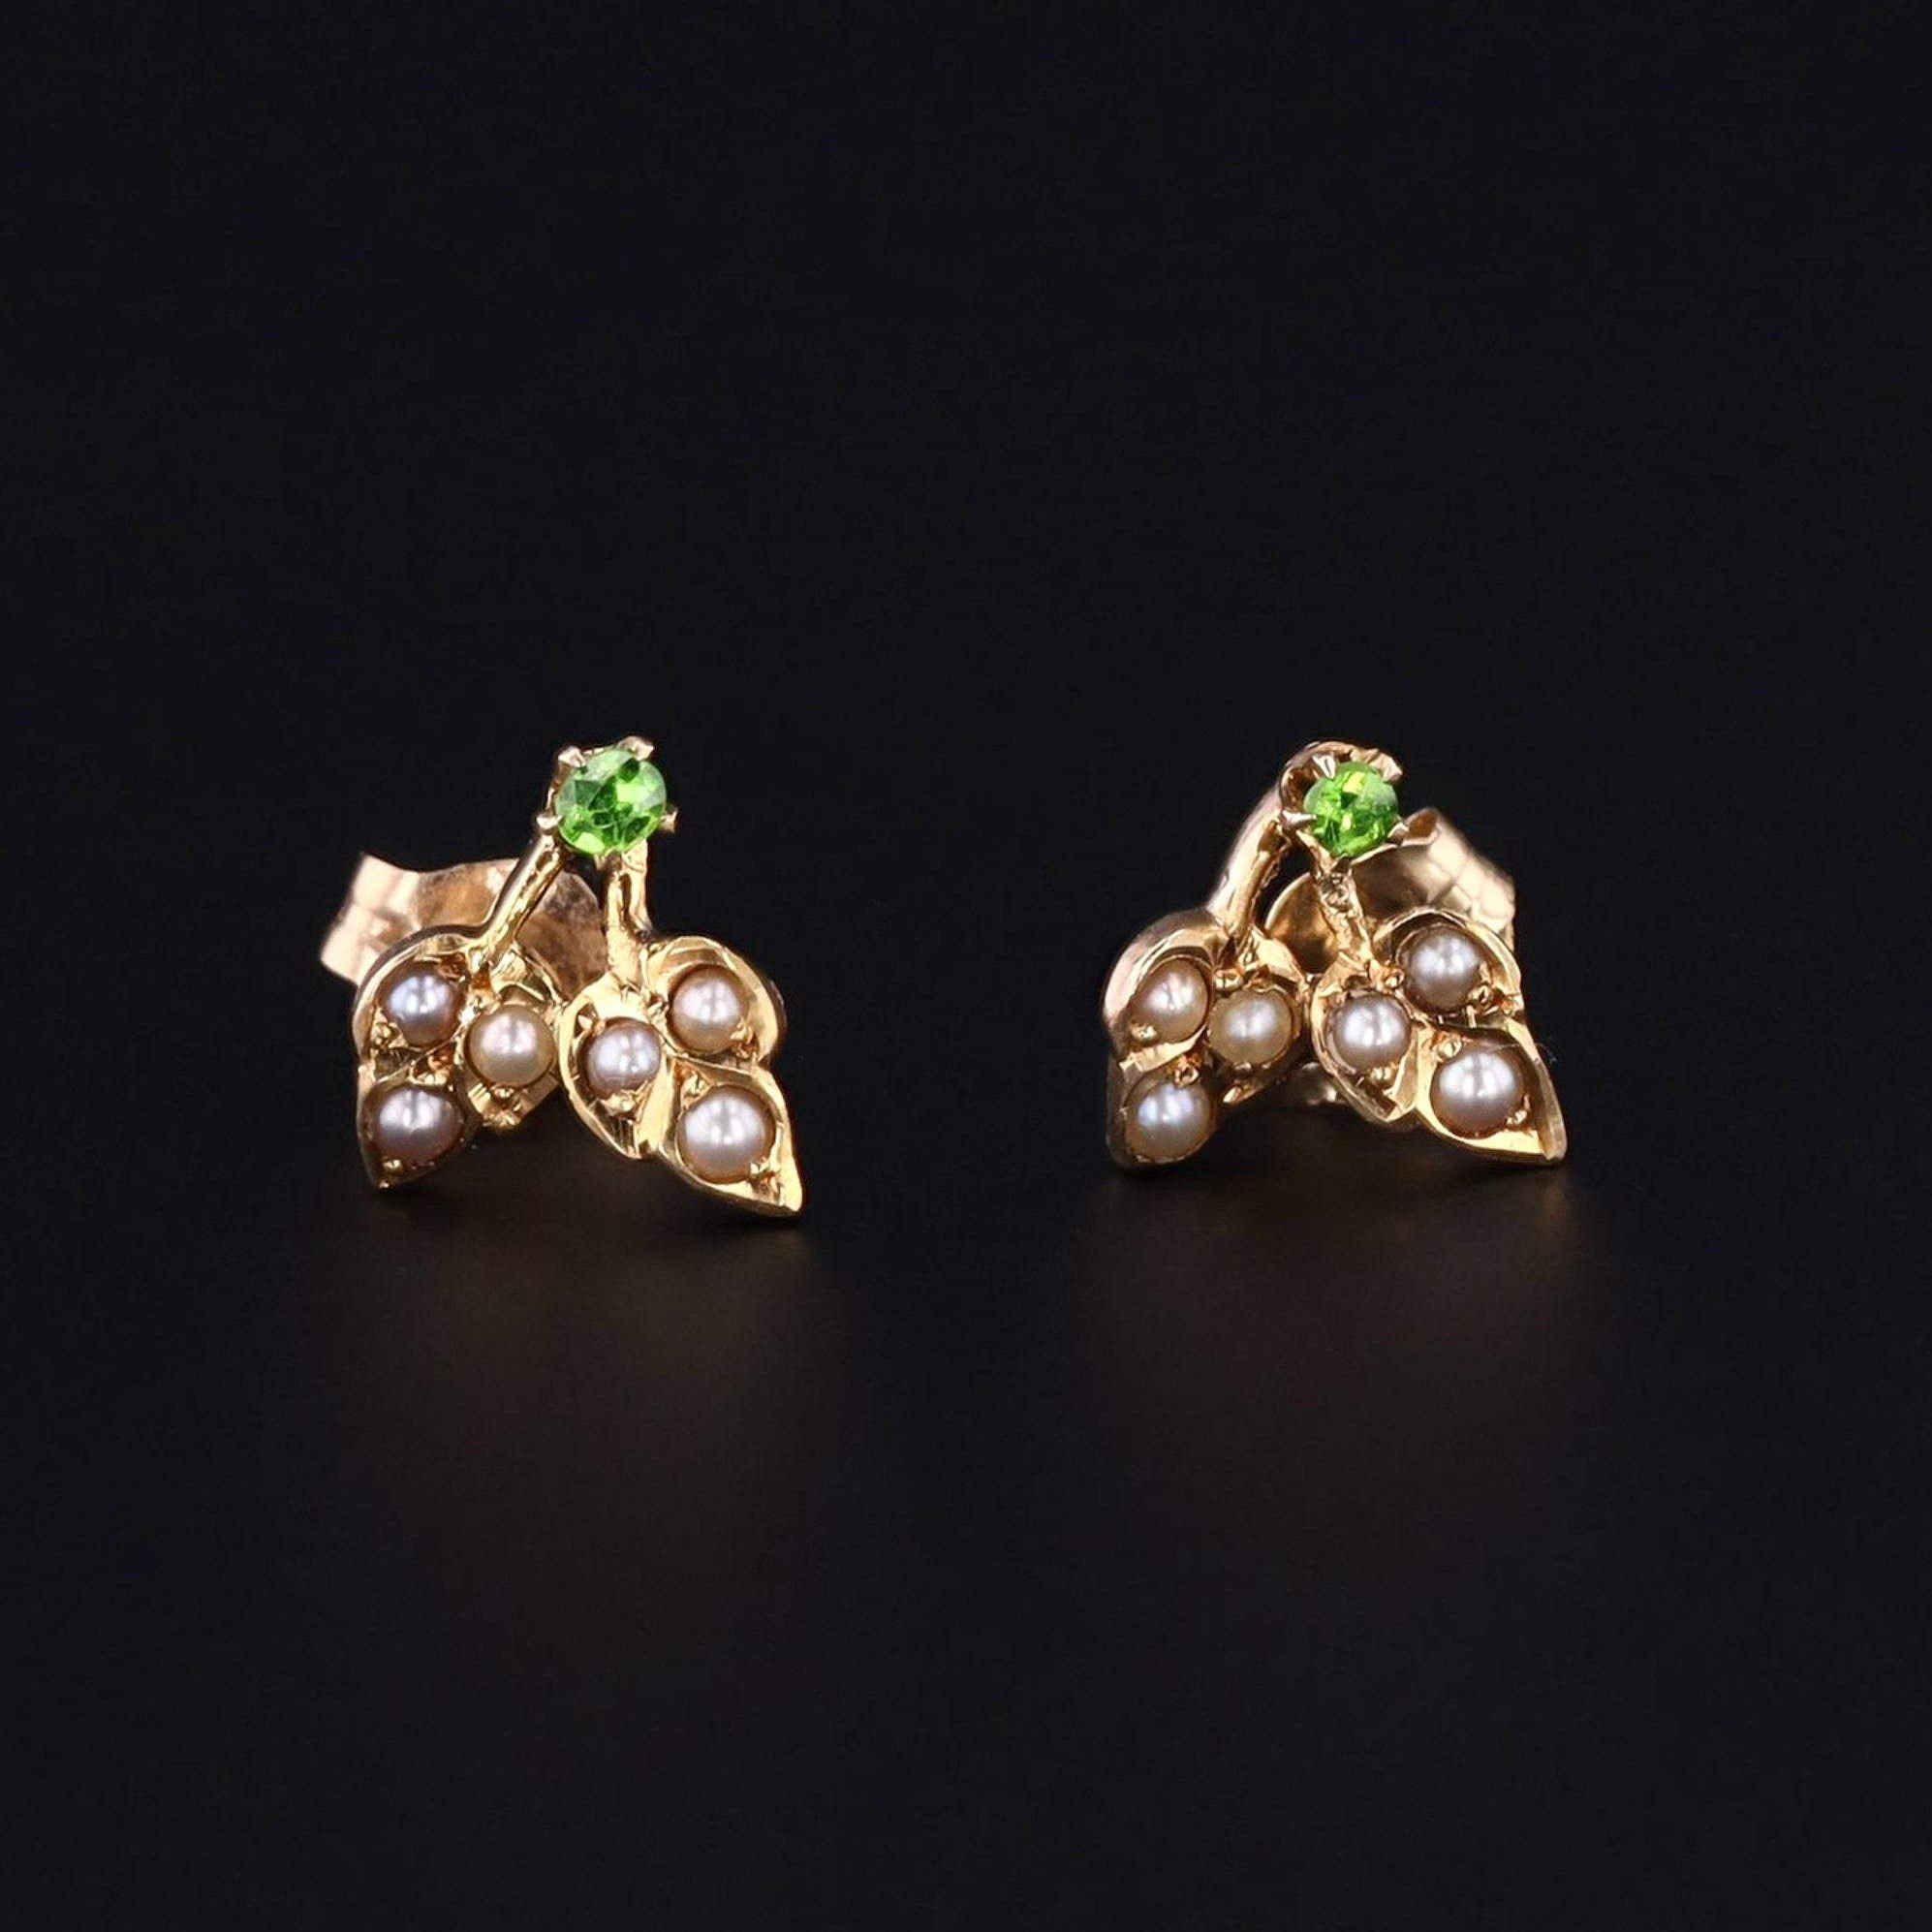 Pearl & Demantoid Garnet Flower Earrings | Antique Pin Conversion Earrings | Pearl Earrings | Bridal Earrings